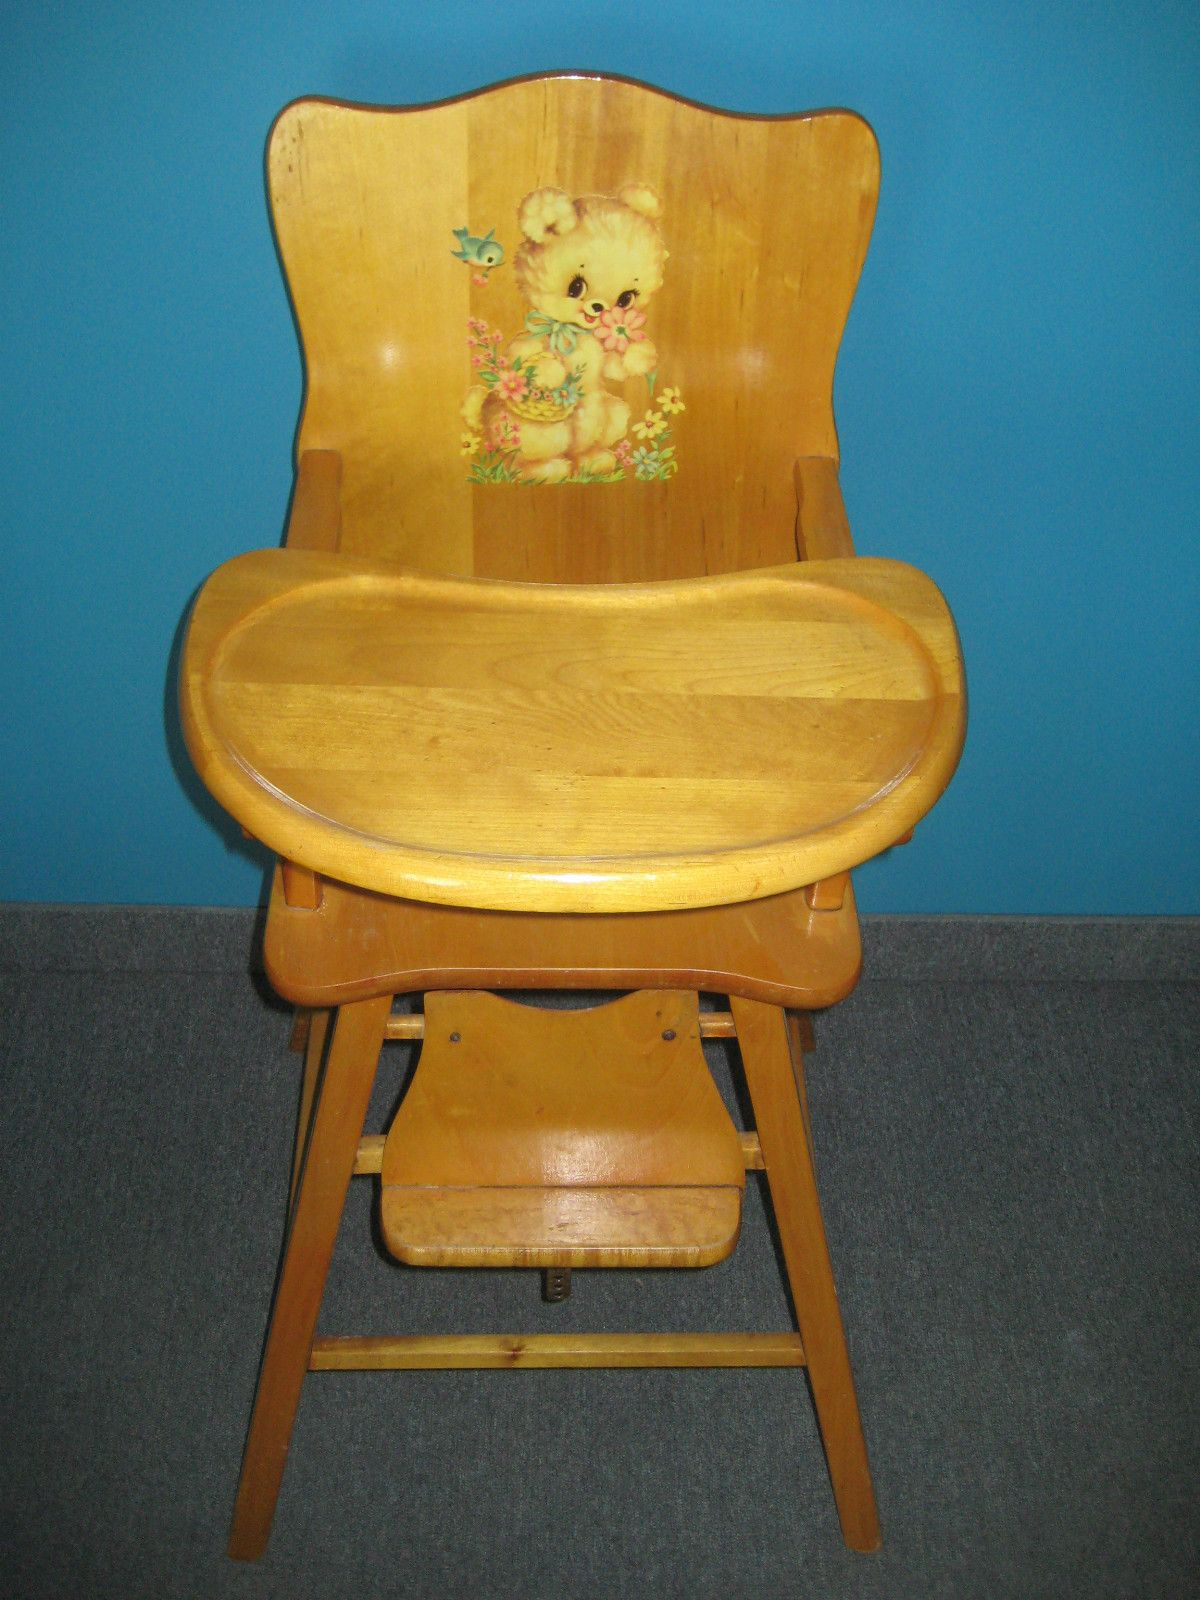 Vintage Wooden High Chair Pretty Much